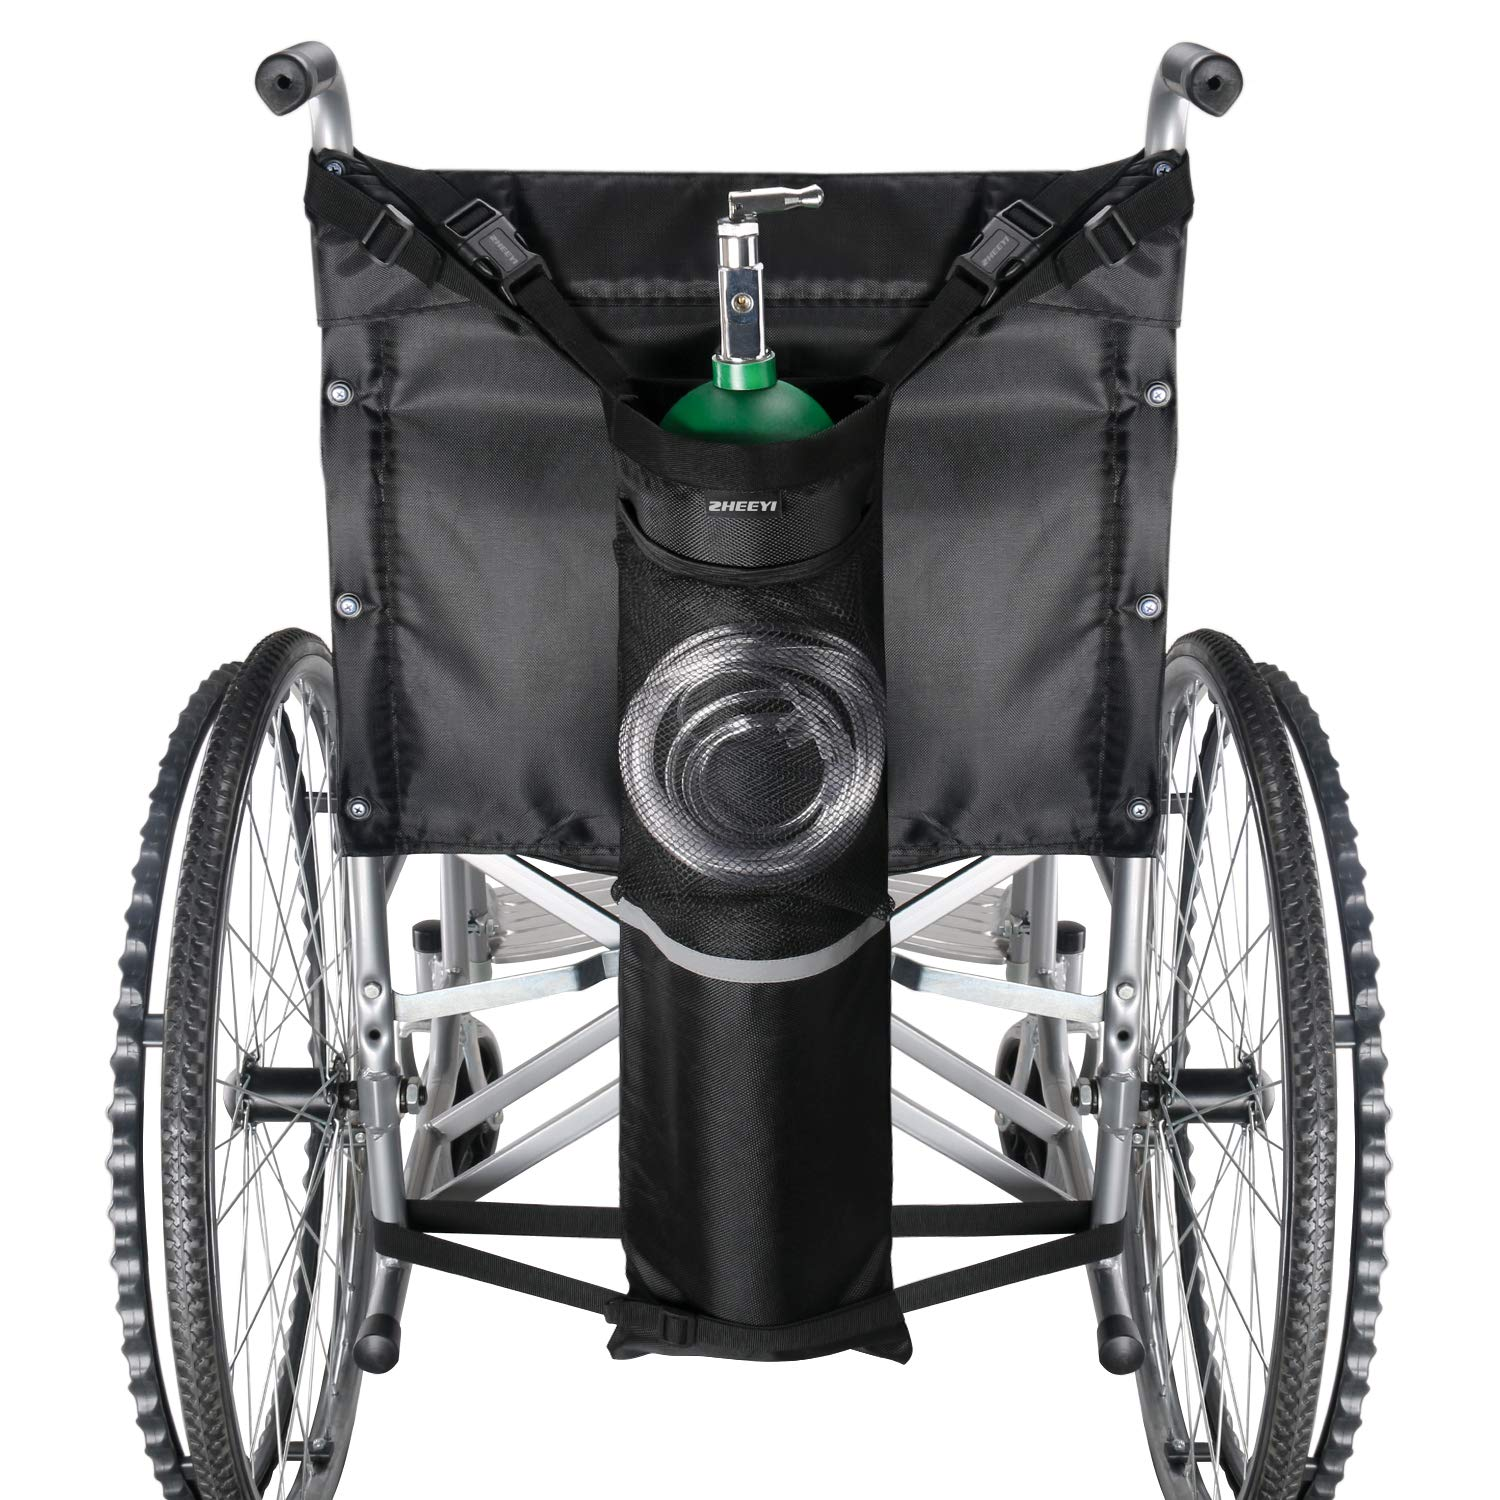 ZHEEYI Oxygen Cylinder Bag for Wheelchairs with Buckles, Fits Any Wheelchair, Black (Fits Most Oxygen cylinders) by ZHEEYI